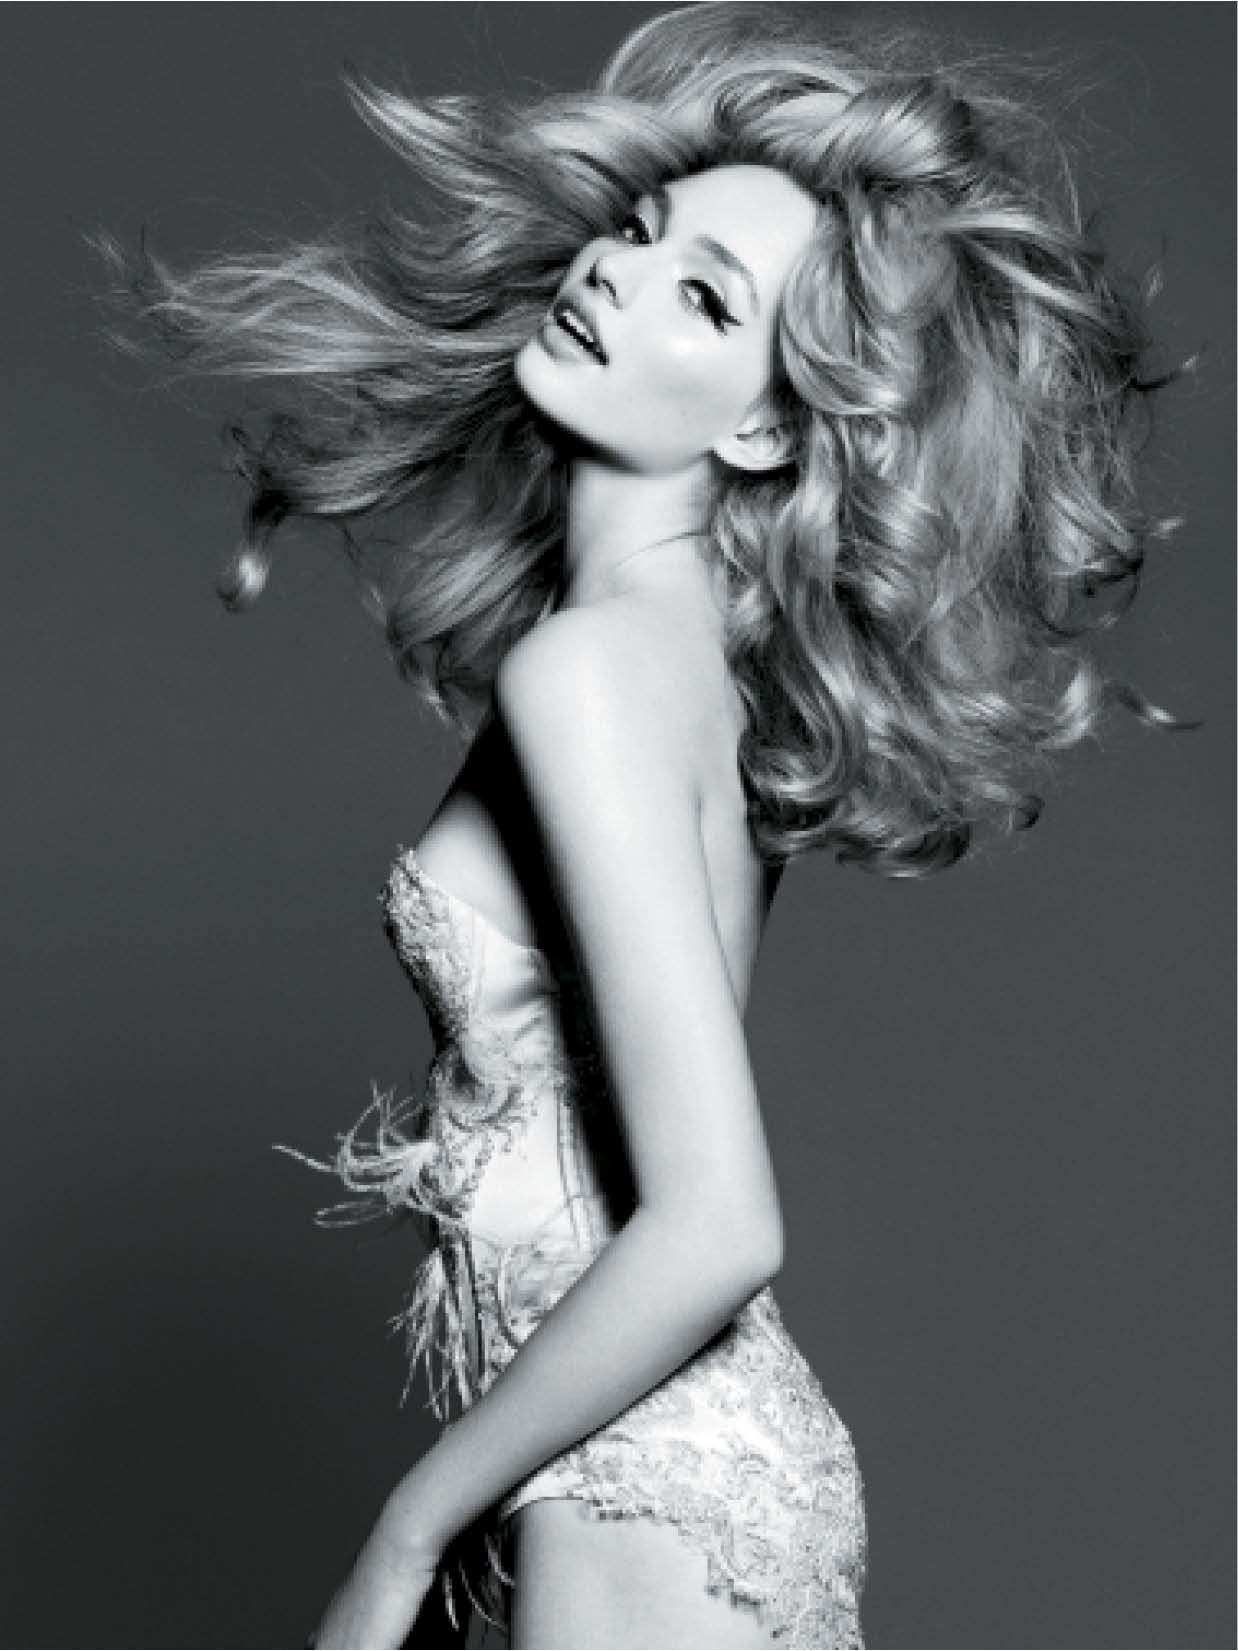 Voluminous, untamed tresses recall Bardot's enduring sex appeal. It's a look that never goes out of style.